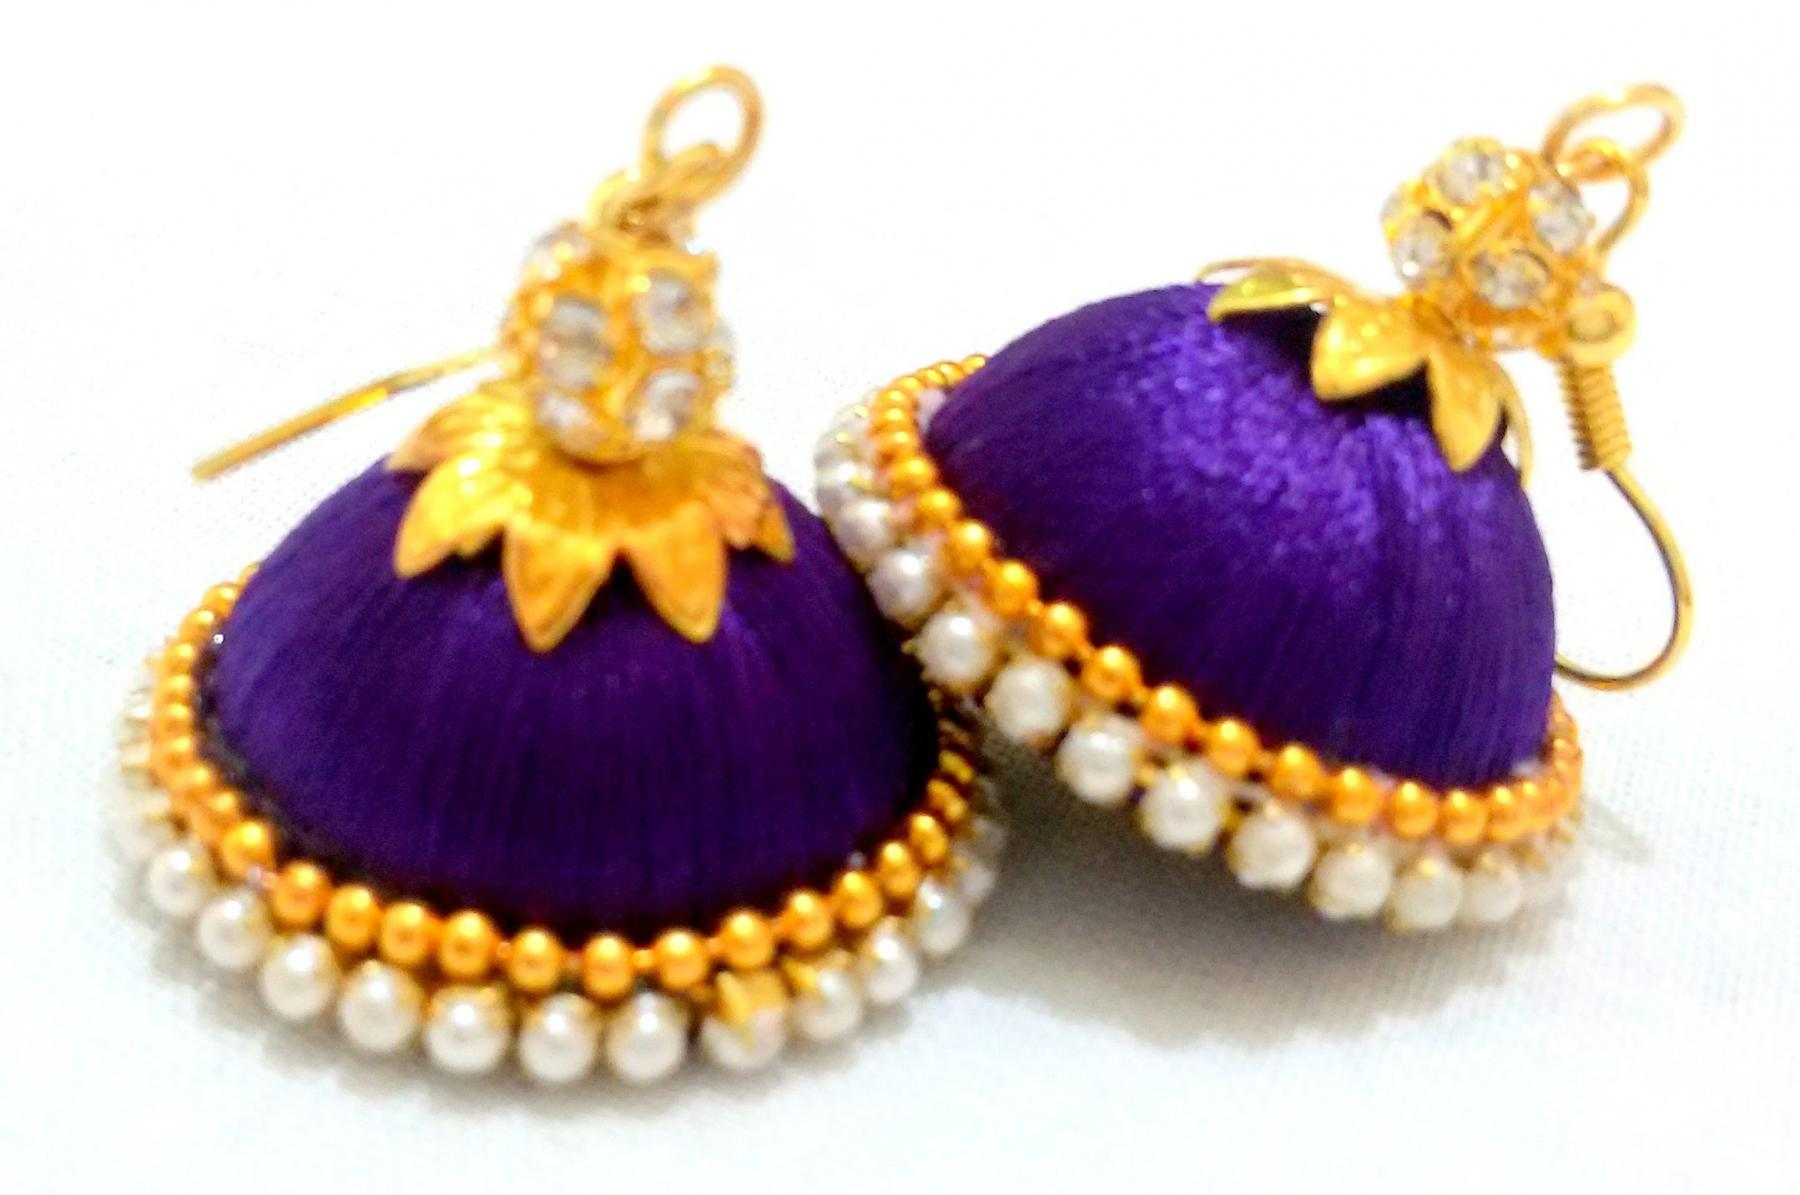 Silkthread Jewellery Order Customized Silkthread Jewellery in Pune. Buy Silkthread Jewellery For GIfting in PUne.